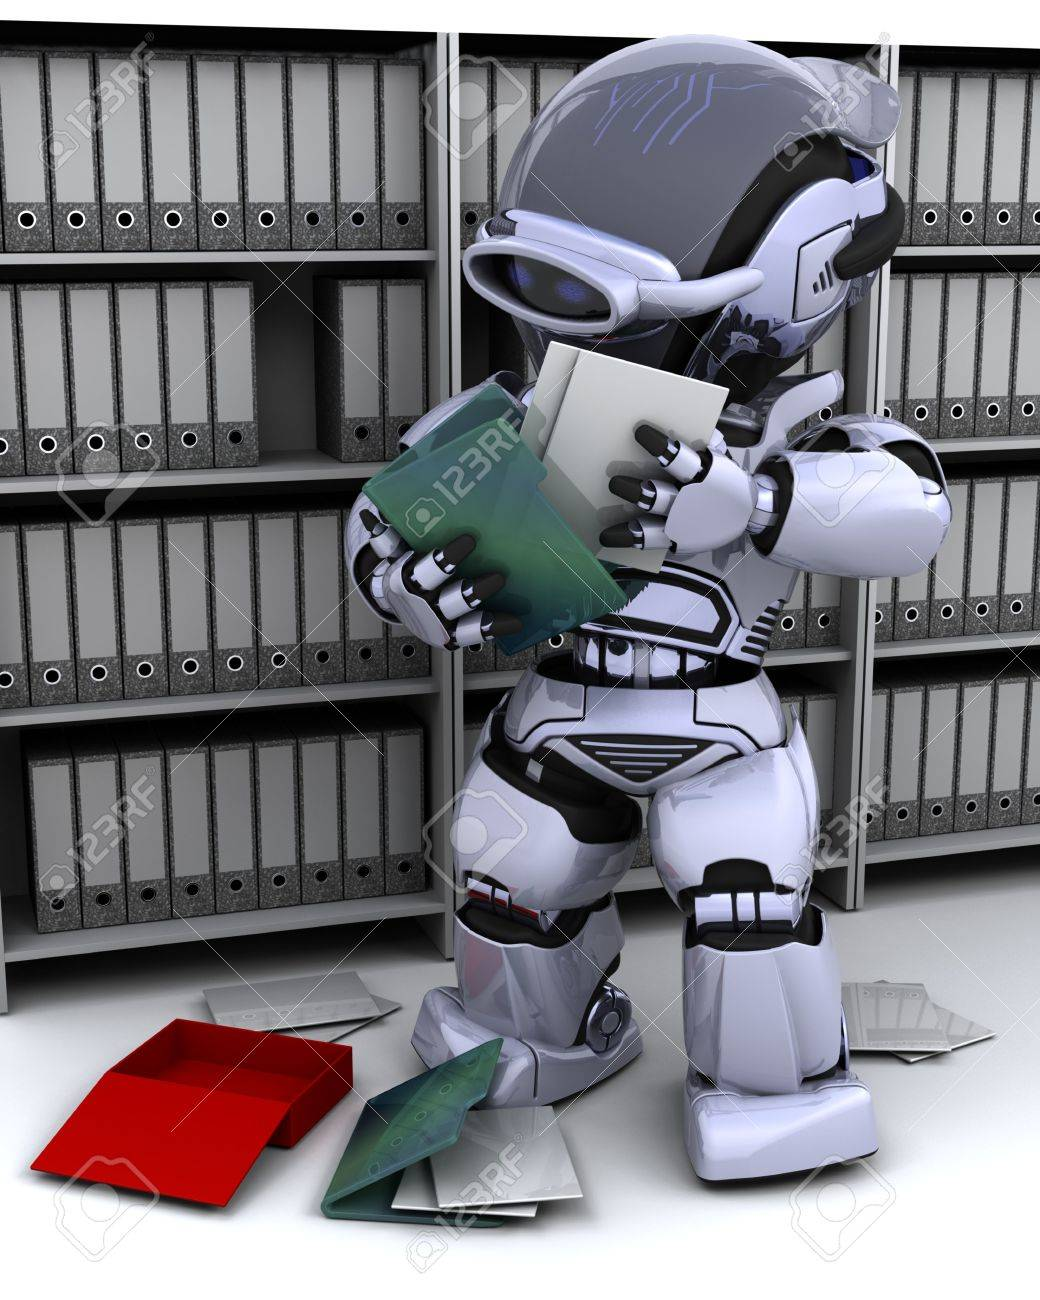 3D Render of robot filing documents Stock Photo - 7387271